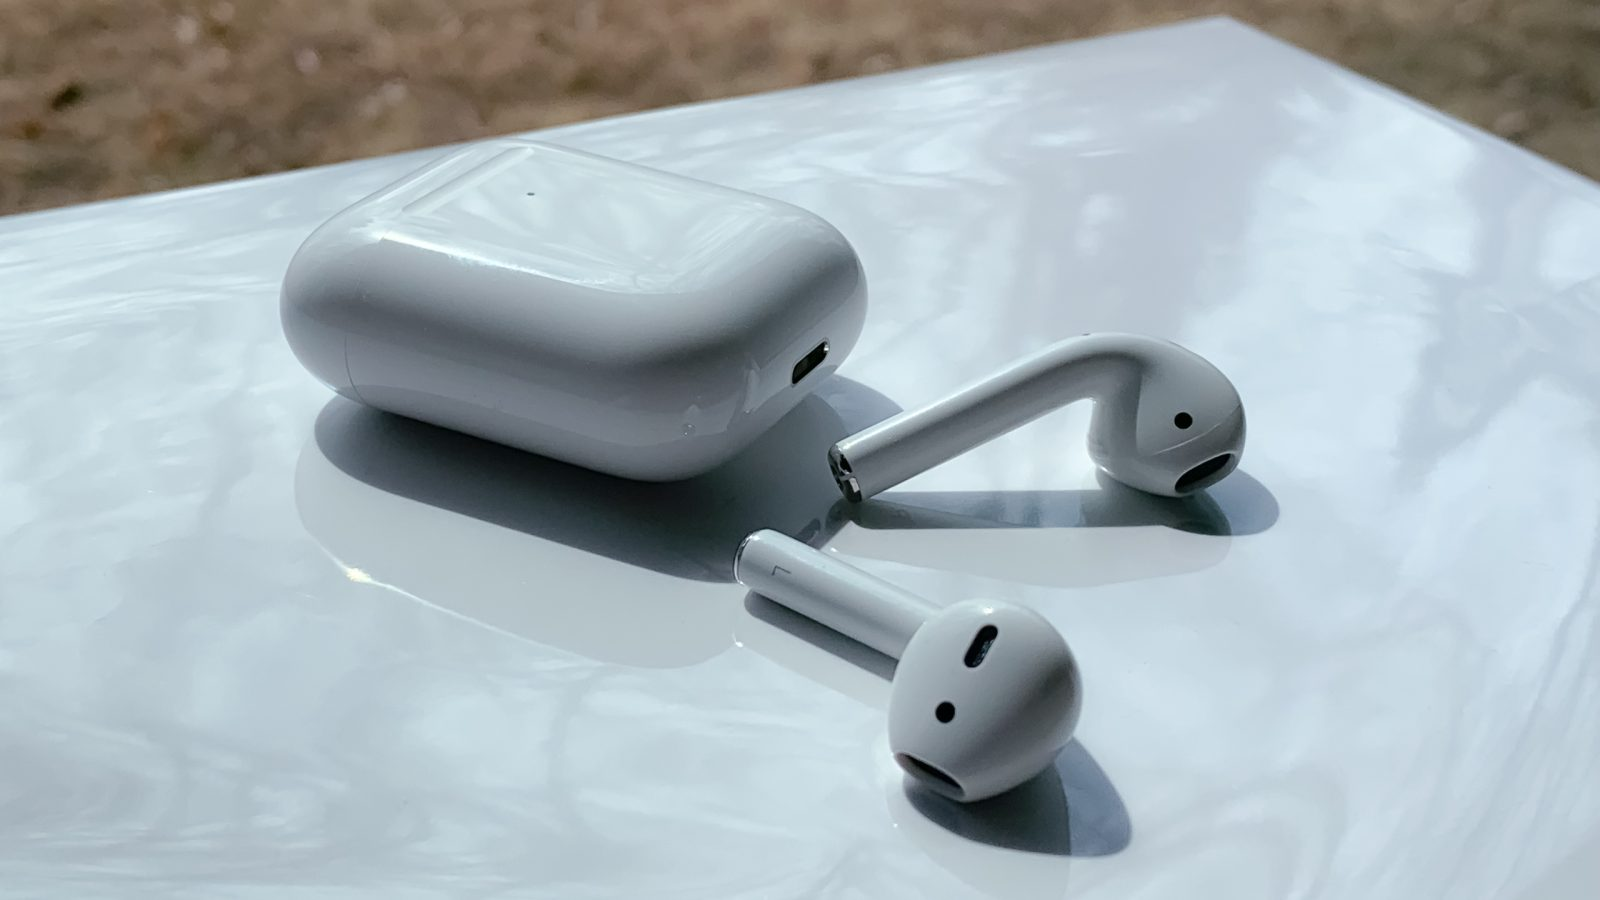 official photos 9970d 439cb Experiencing AirPods: First impressions of Apple's second-gen ...